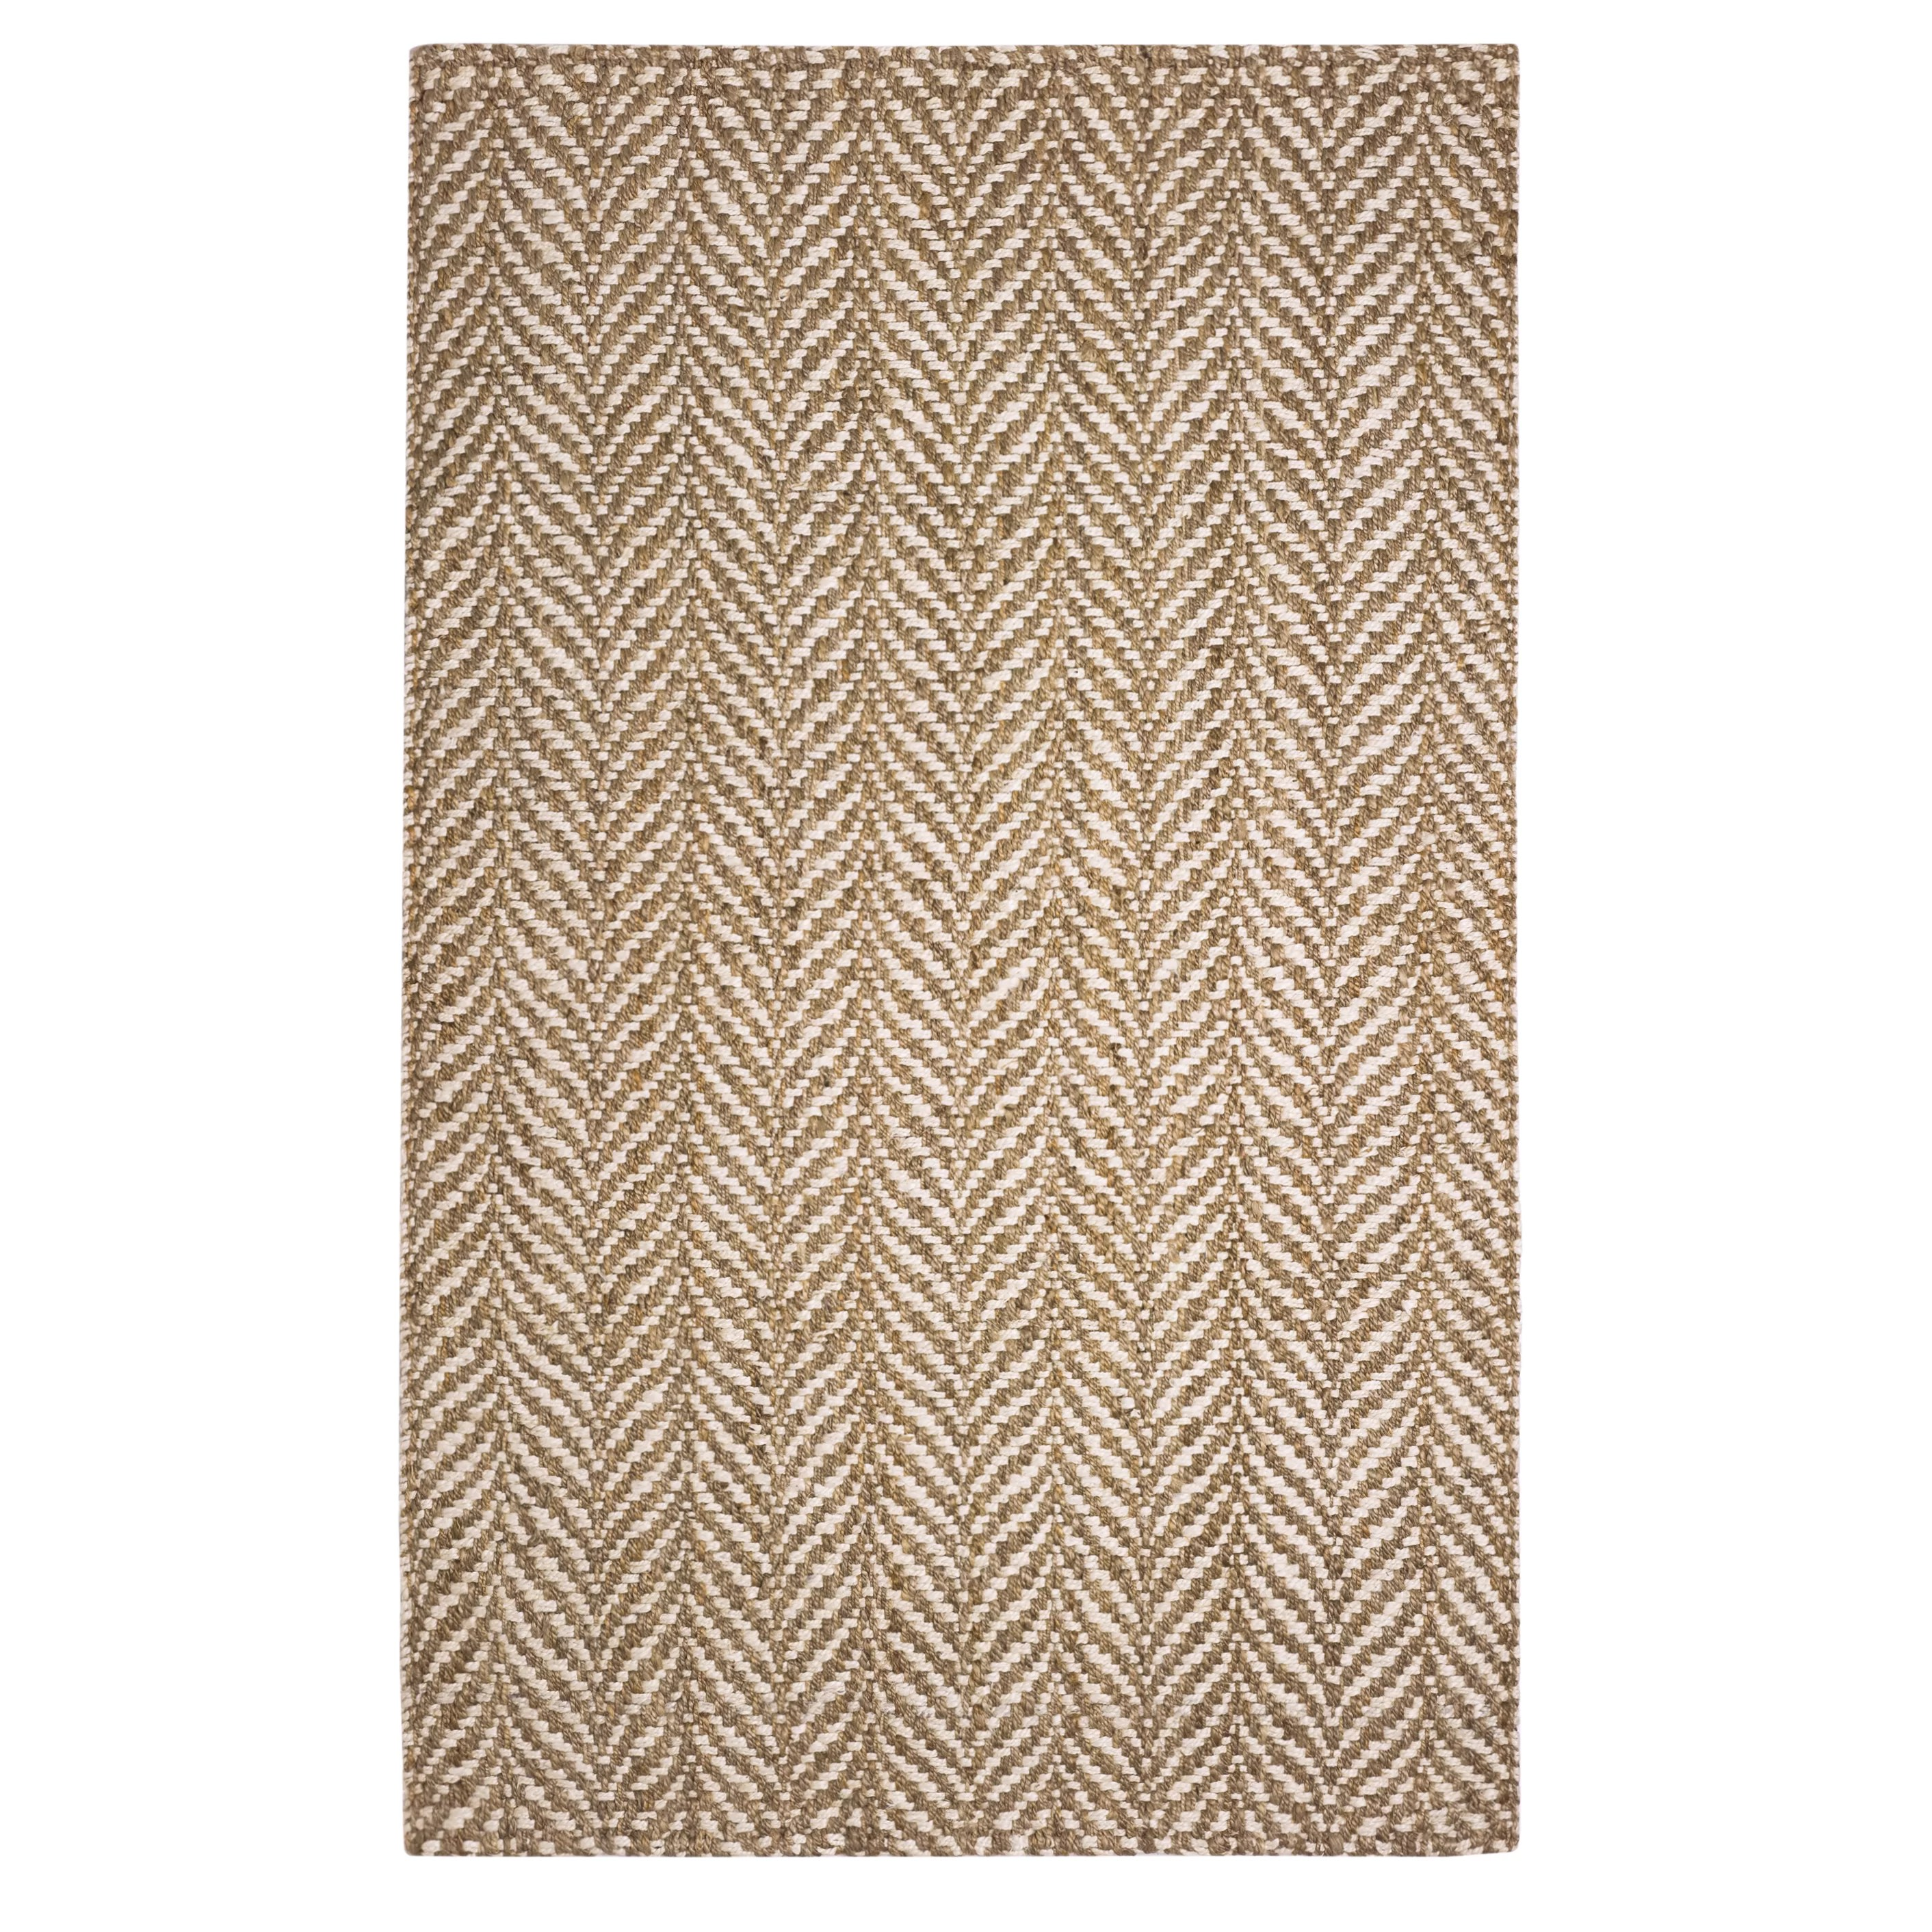 Woven Rugs The Conestoga Trading Co Hines Hand Woven Brown White